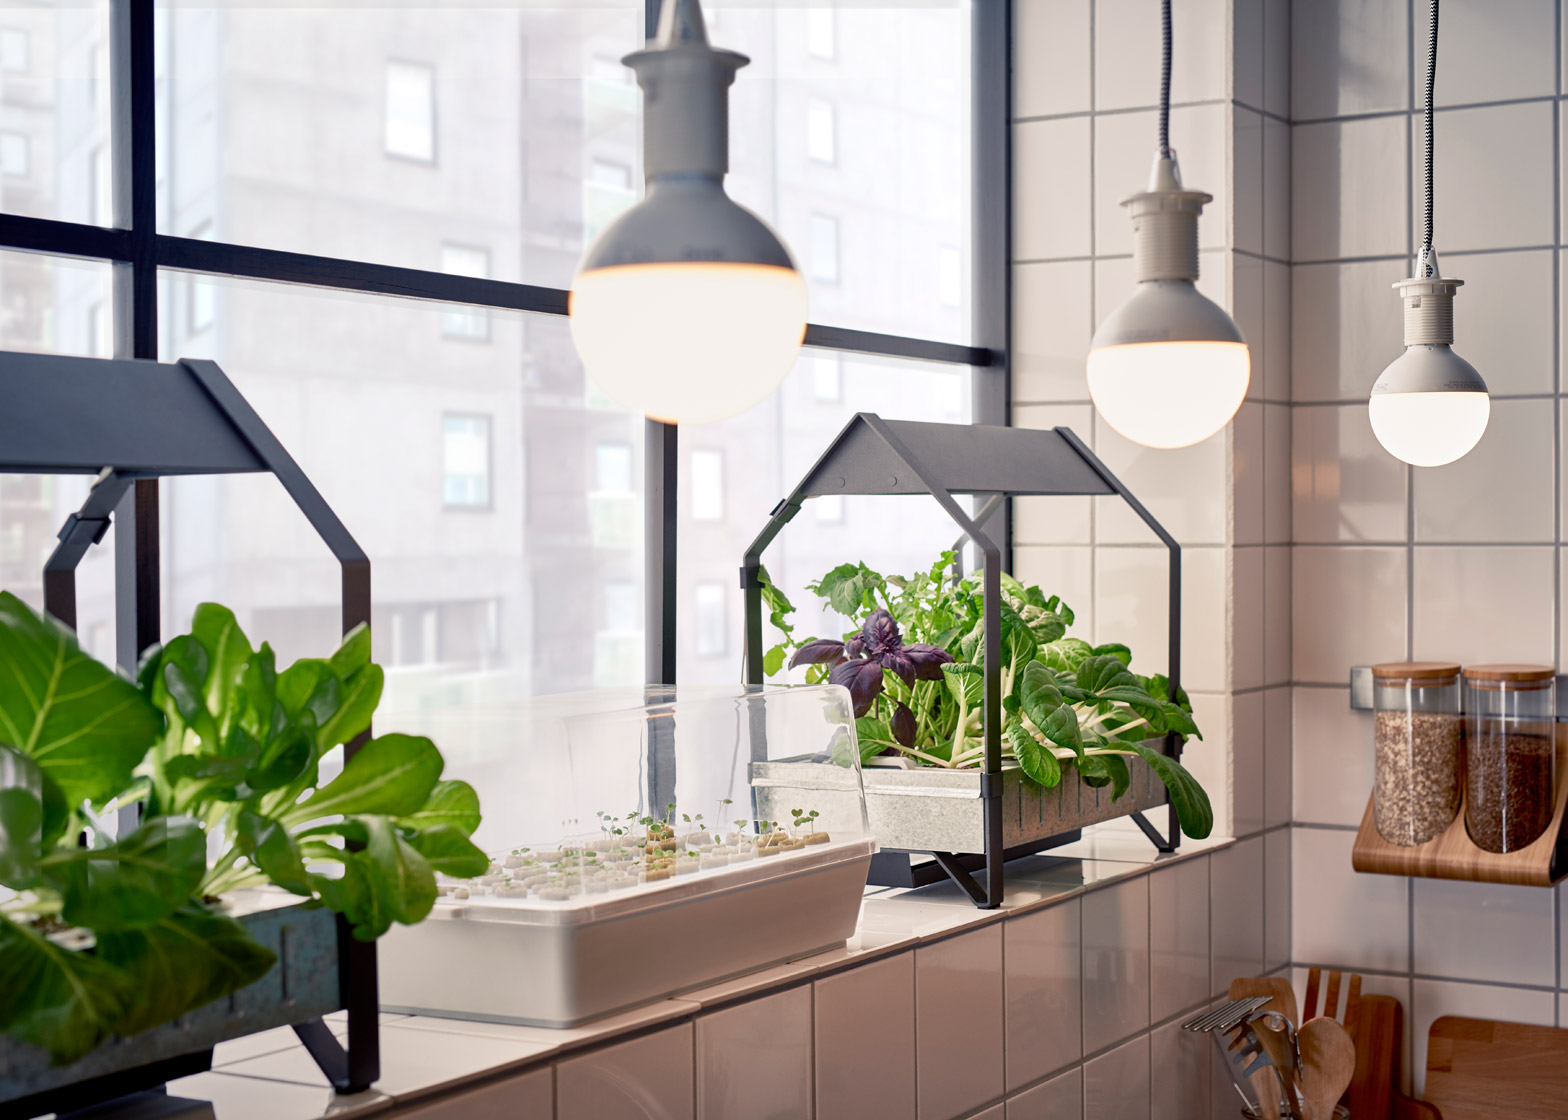 Ikea introduce a hydroponic indoor gardening kit